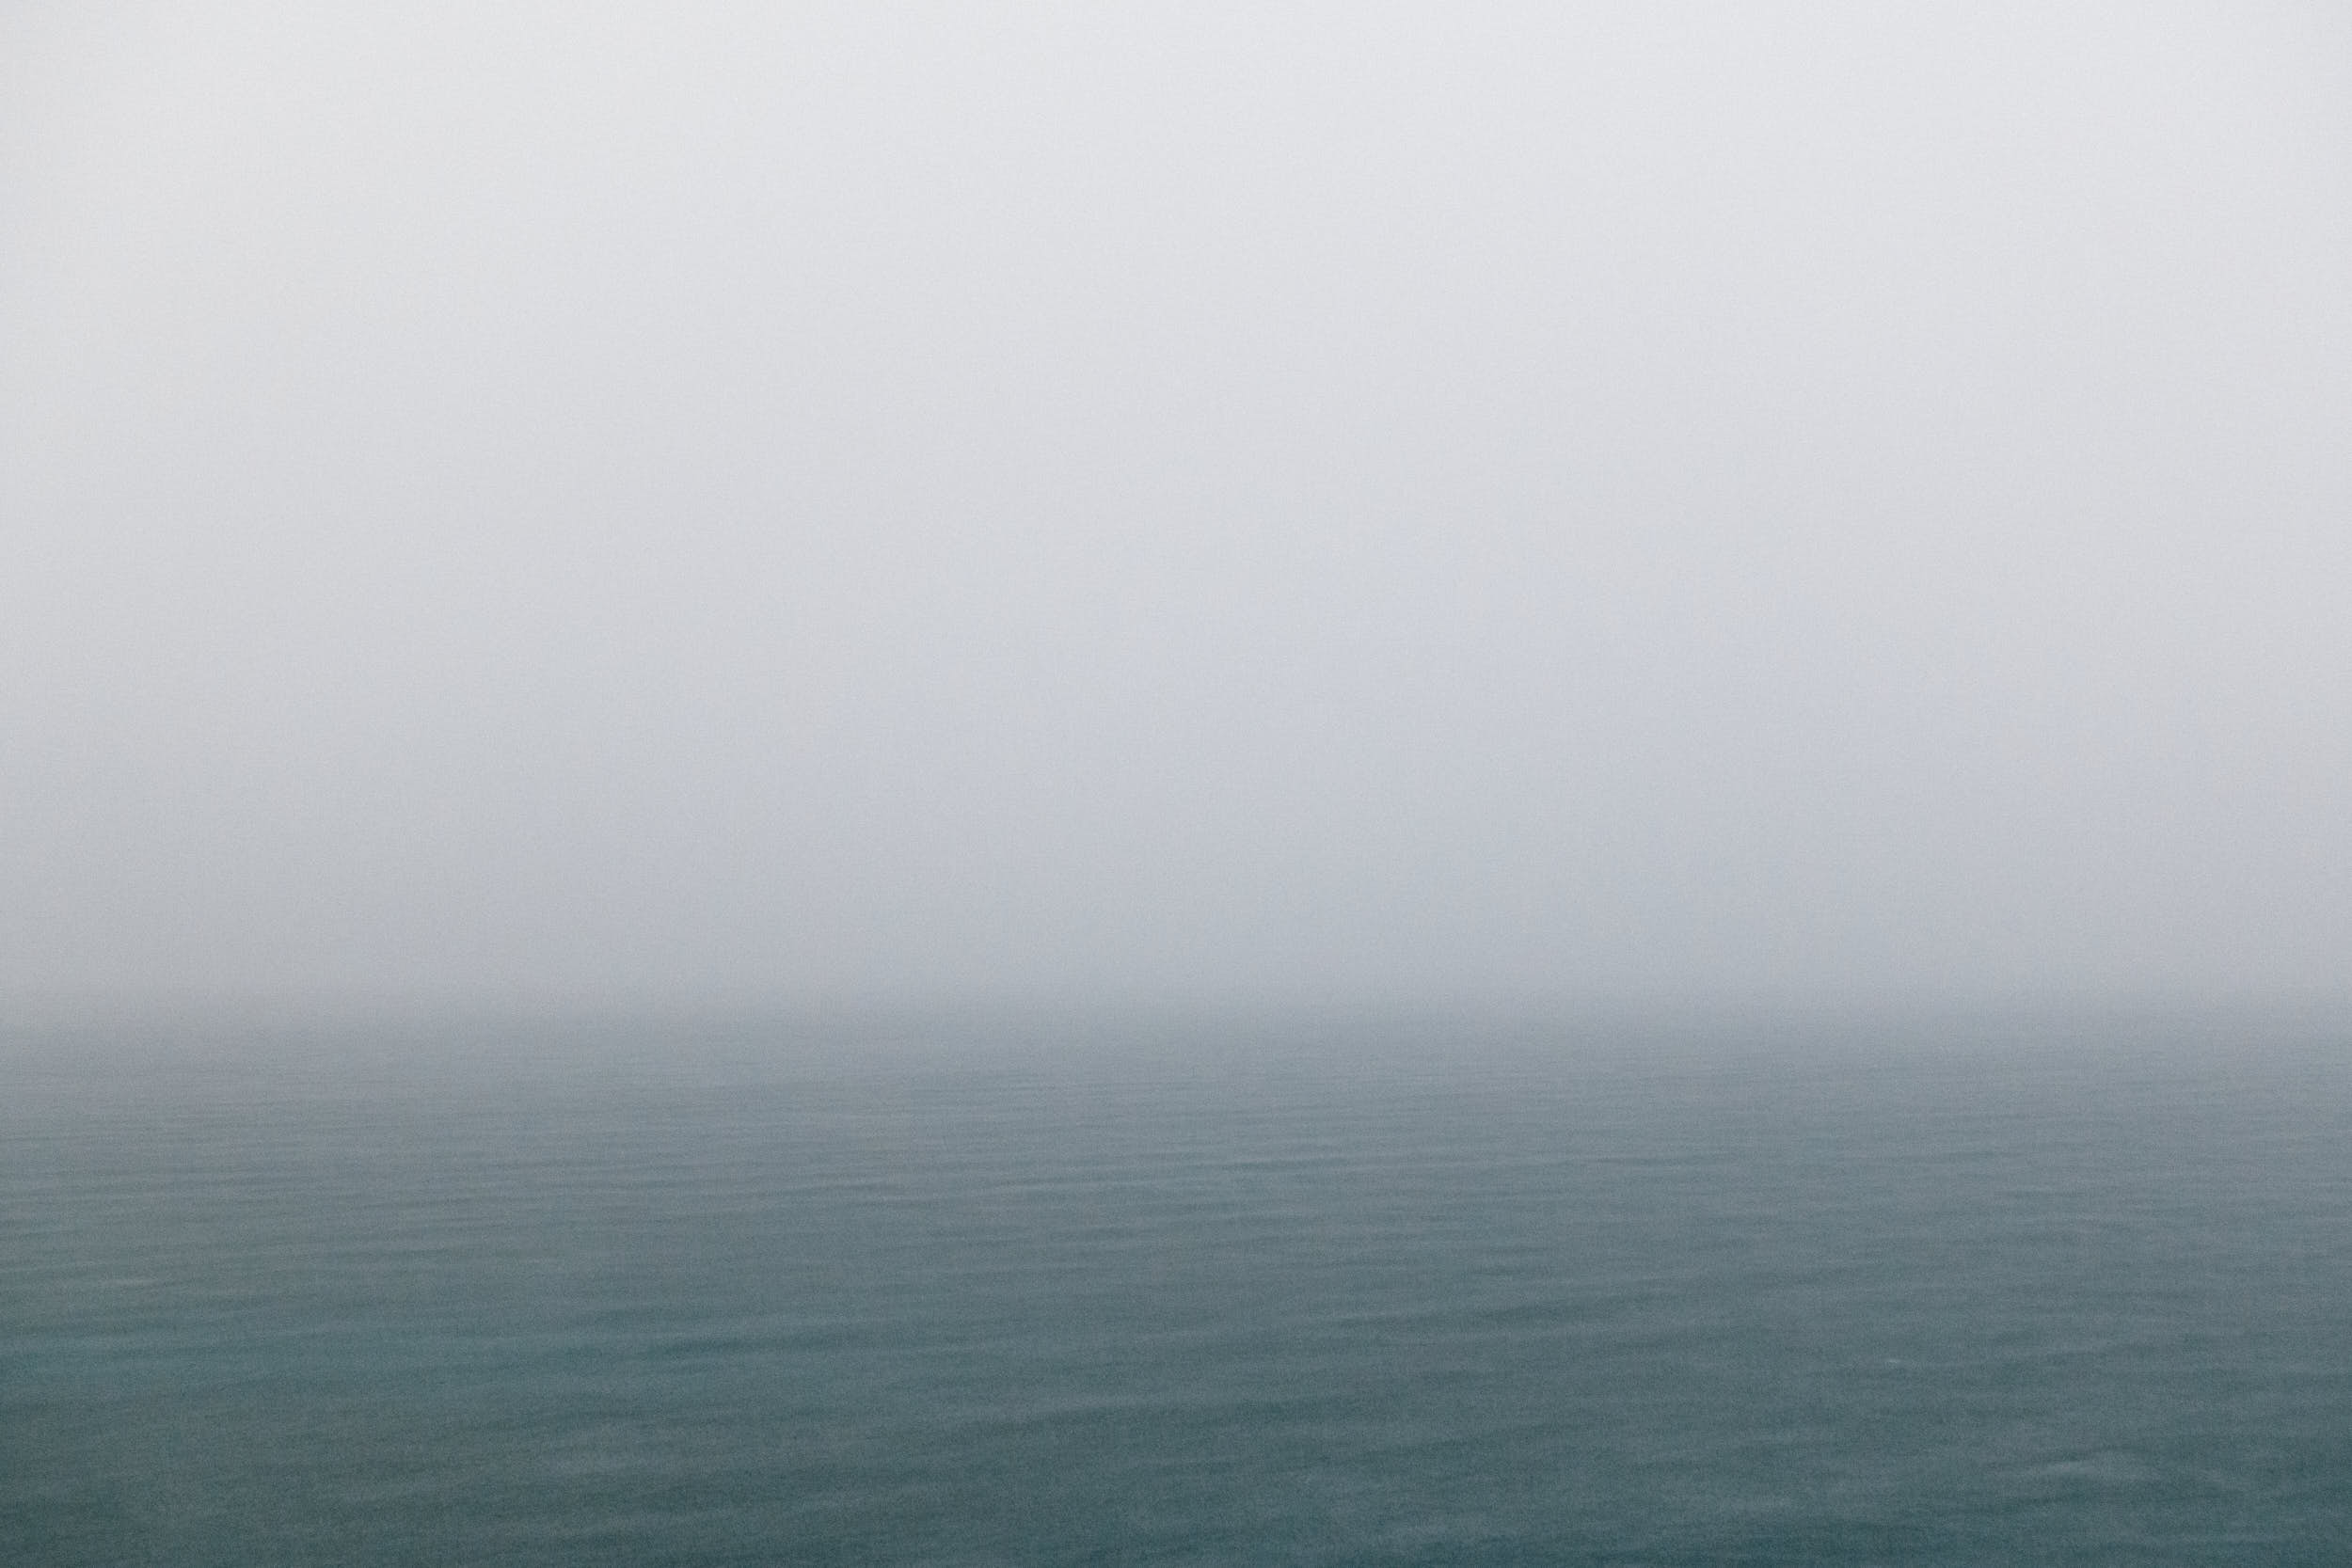 Dramatic minimal seascape during a storm with cool and muted colors.